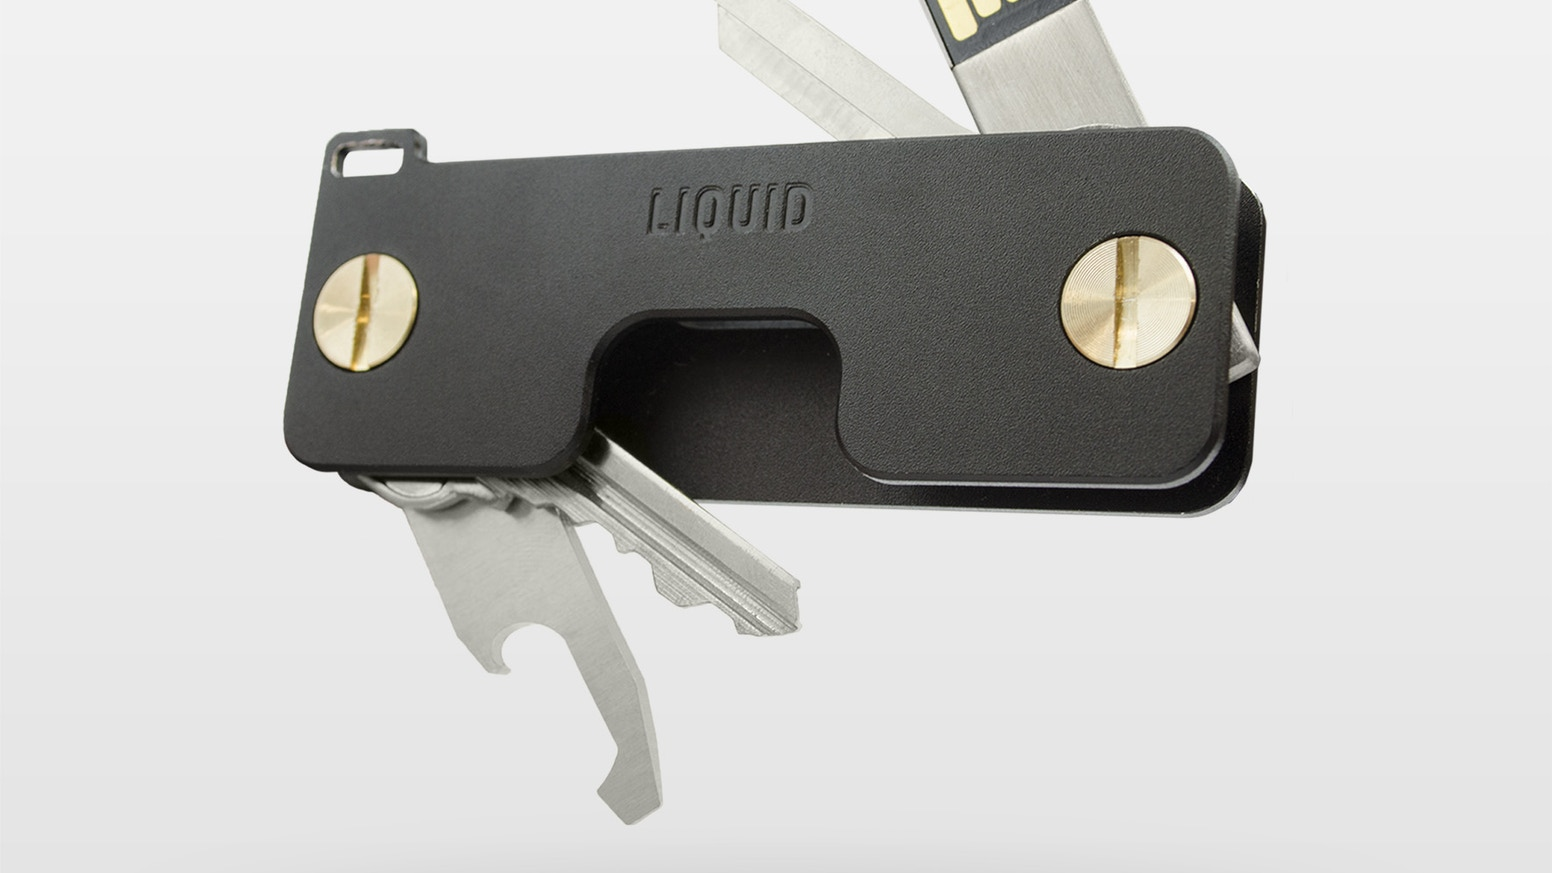 The elite level of key maintenance. A key holder designed to organize your keys and accessories.